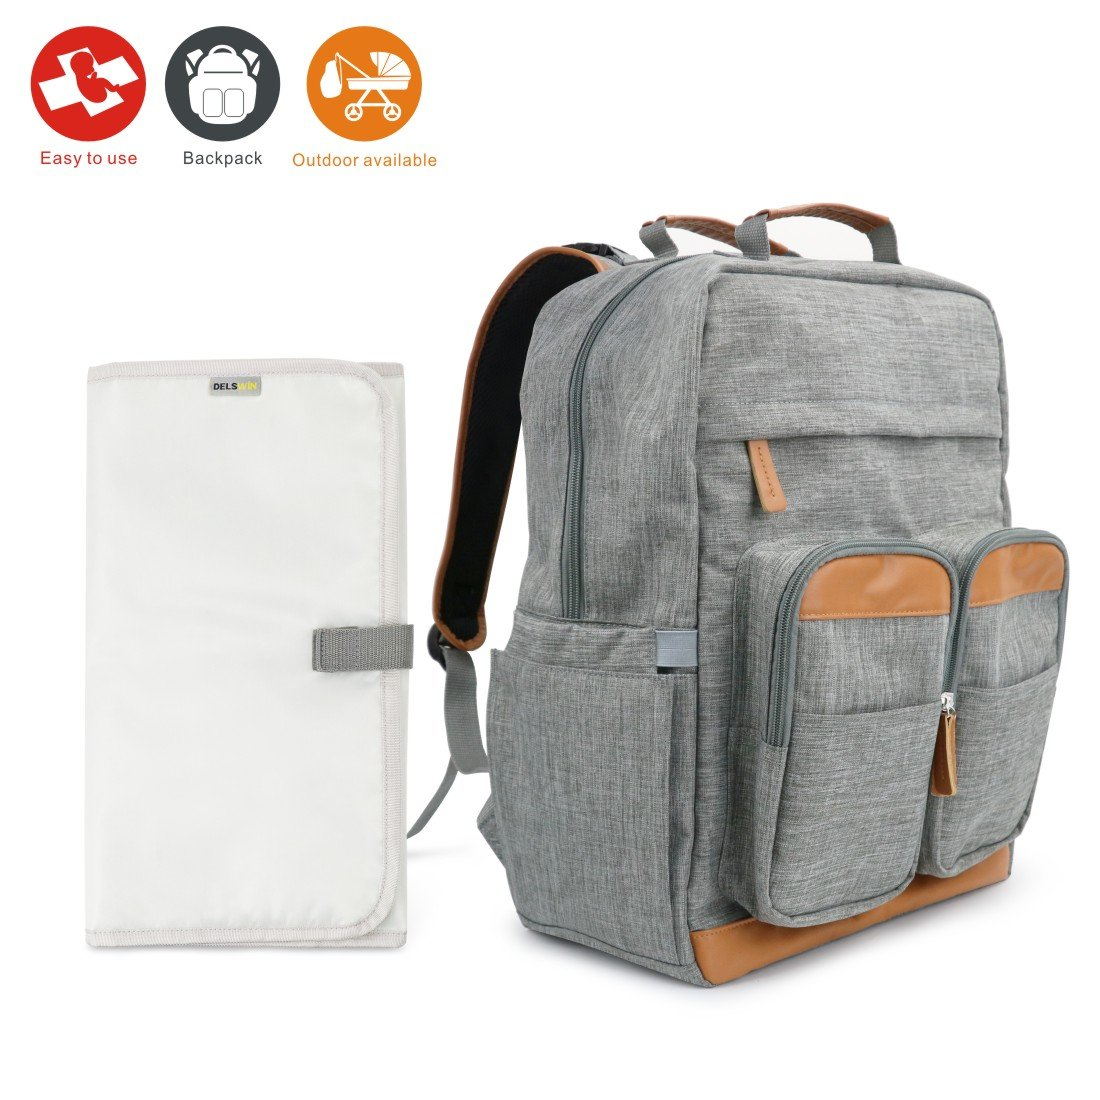 54d3a203eb Get Quotations · Idefair(TM) Diaper Bag Backpack